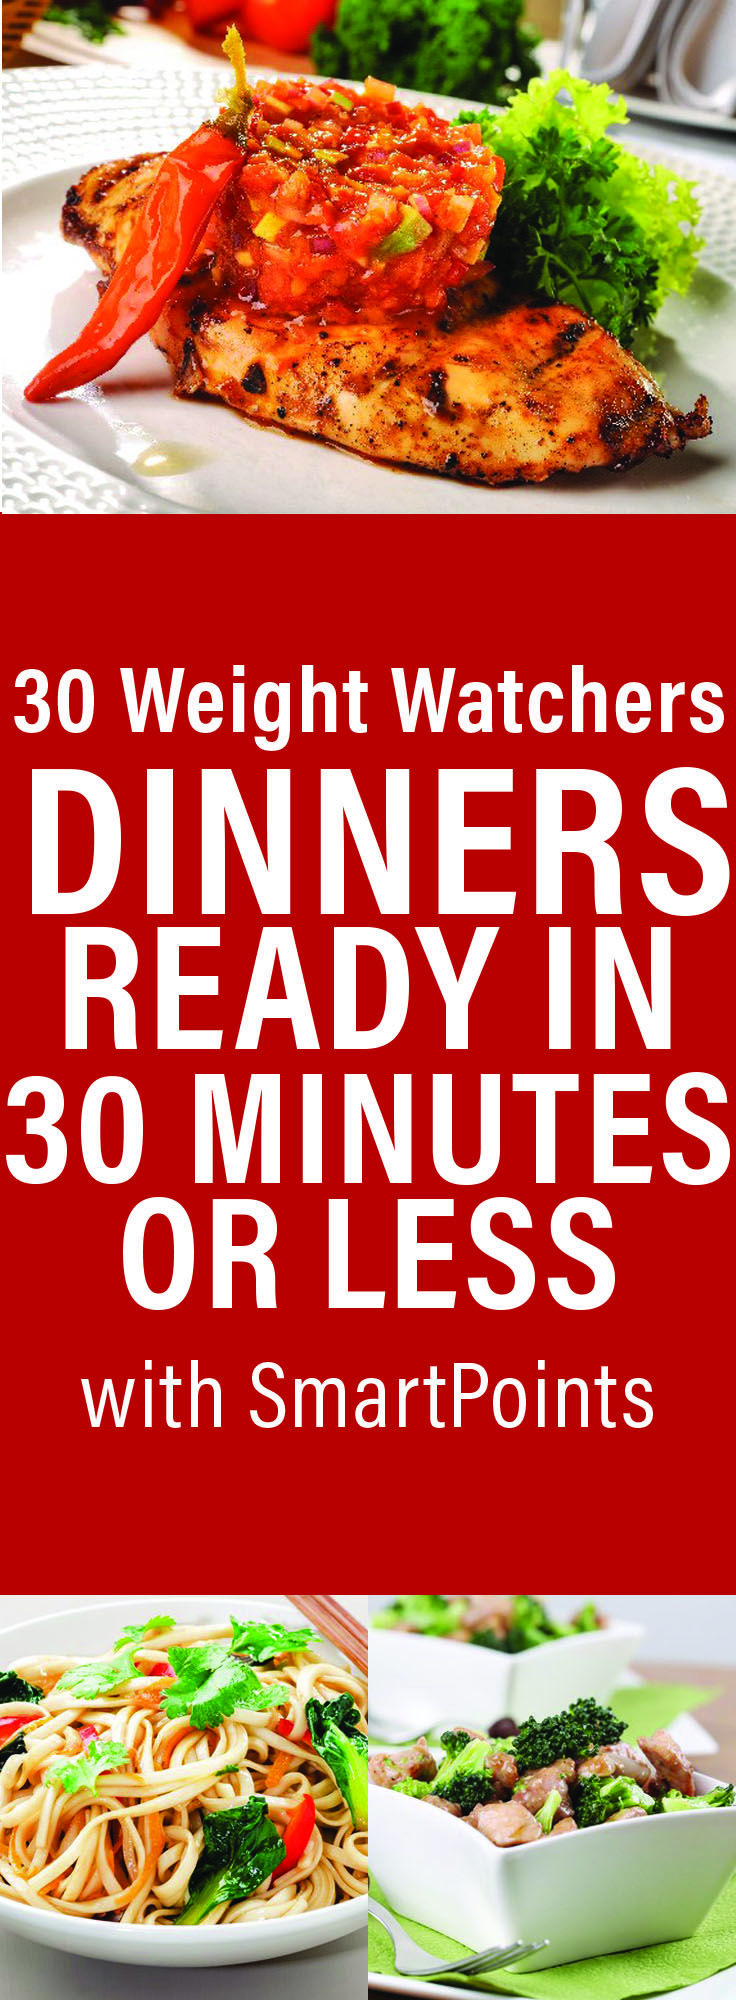 30 Weight Watchers Dinners Ready in 30 Minutes or Less with SmartPoints